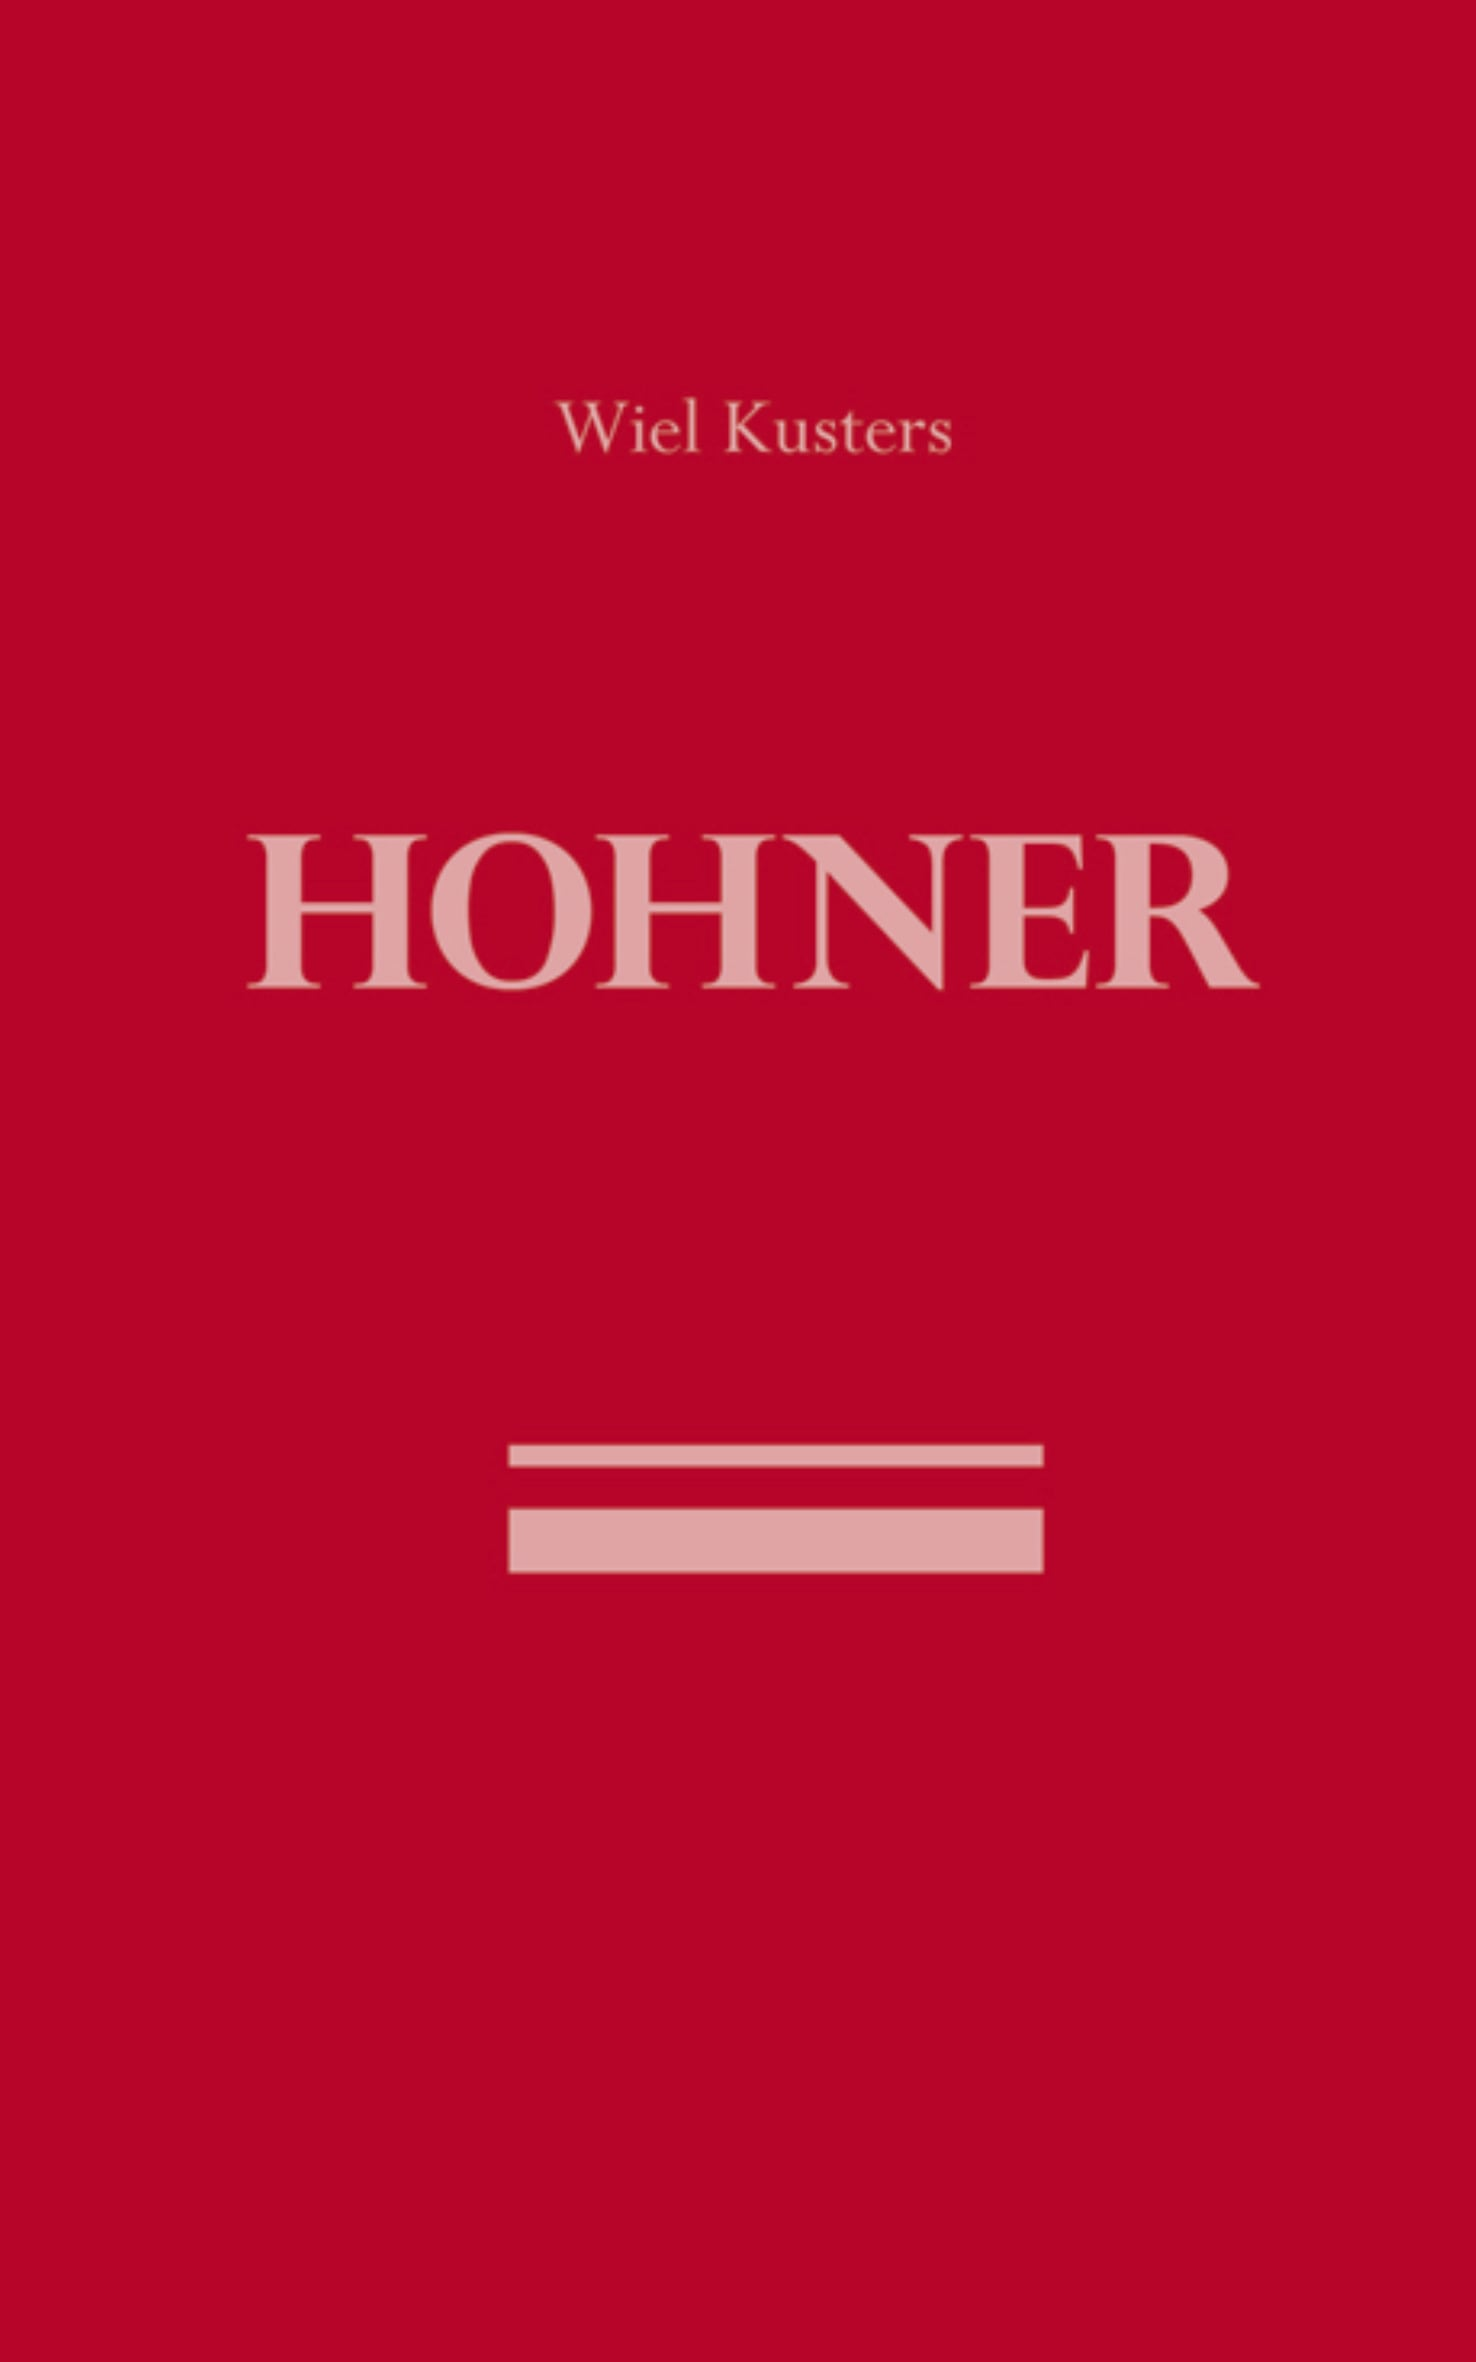 Hohner – Wiel Kusters